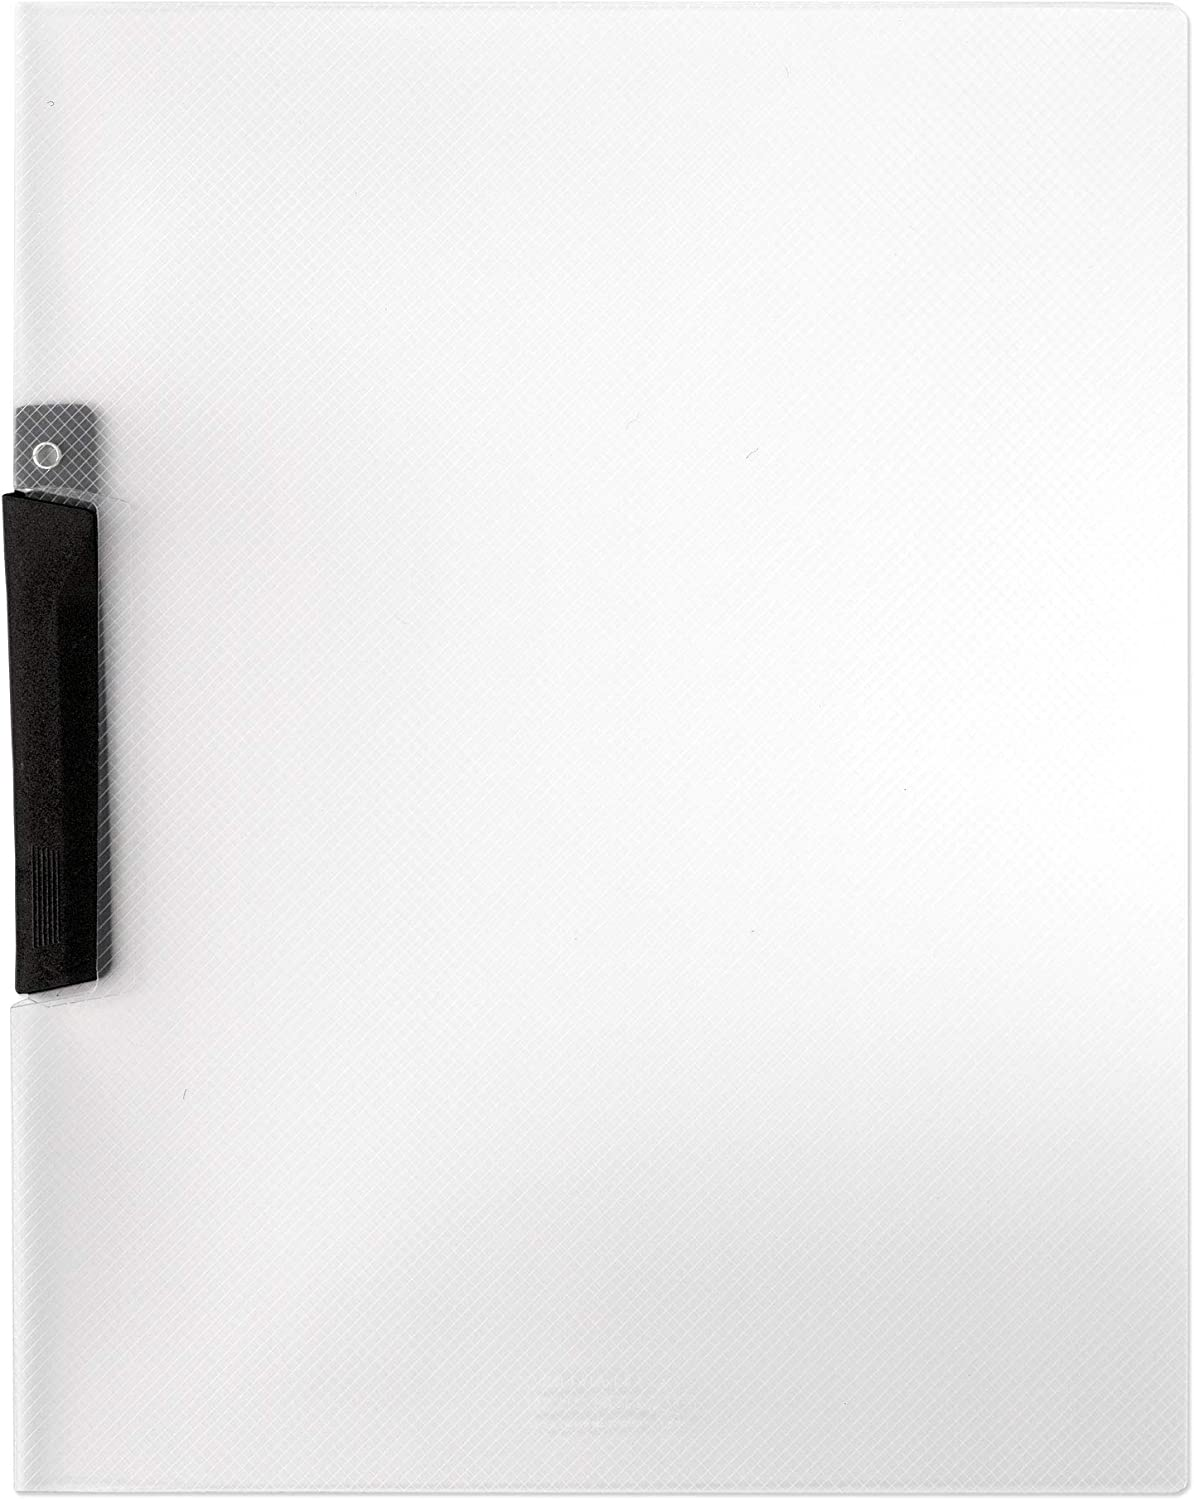 Lion Clear-Line Swing Lock Report Cover, Clear, Pack of 4 (91220-CR-4P) : Colored File Folders : Office Products